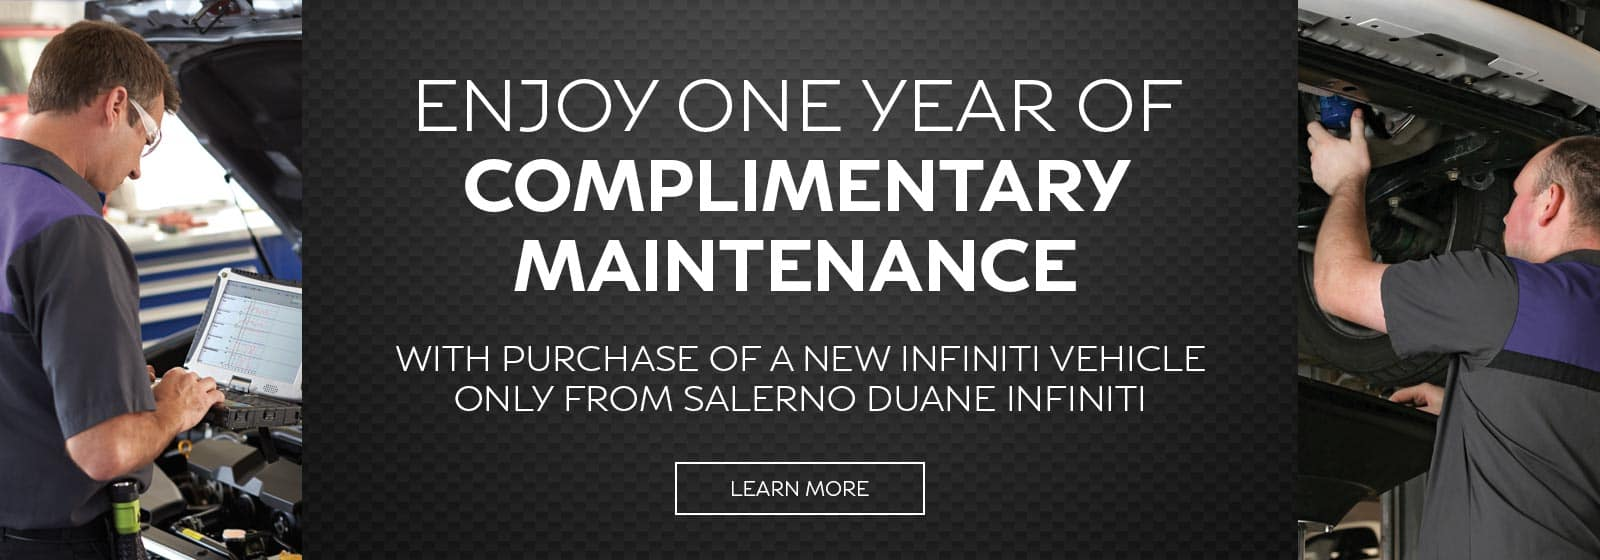 one year complimentary service